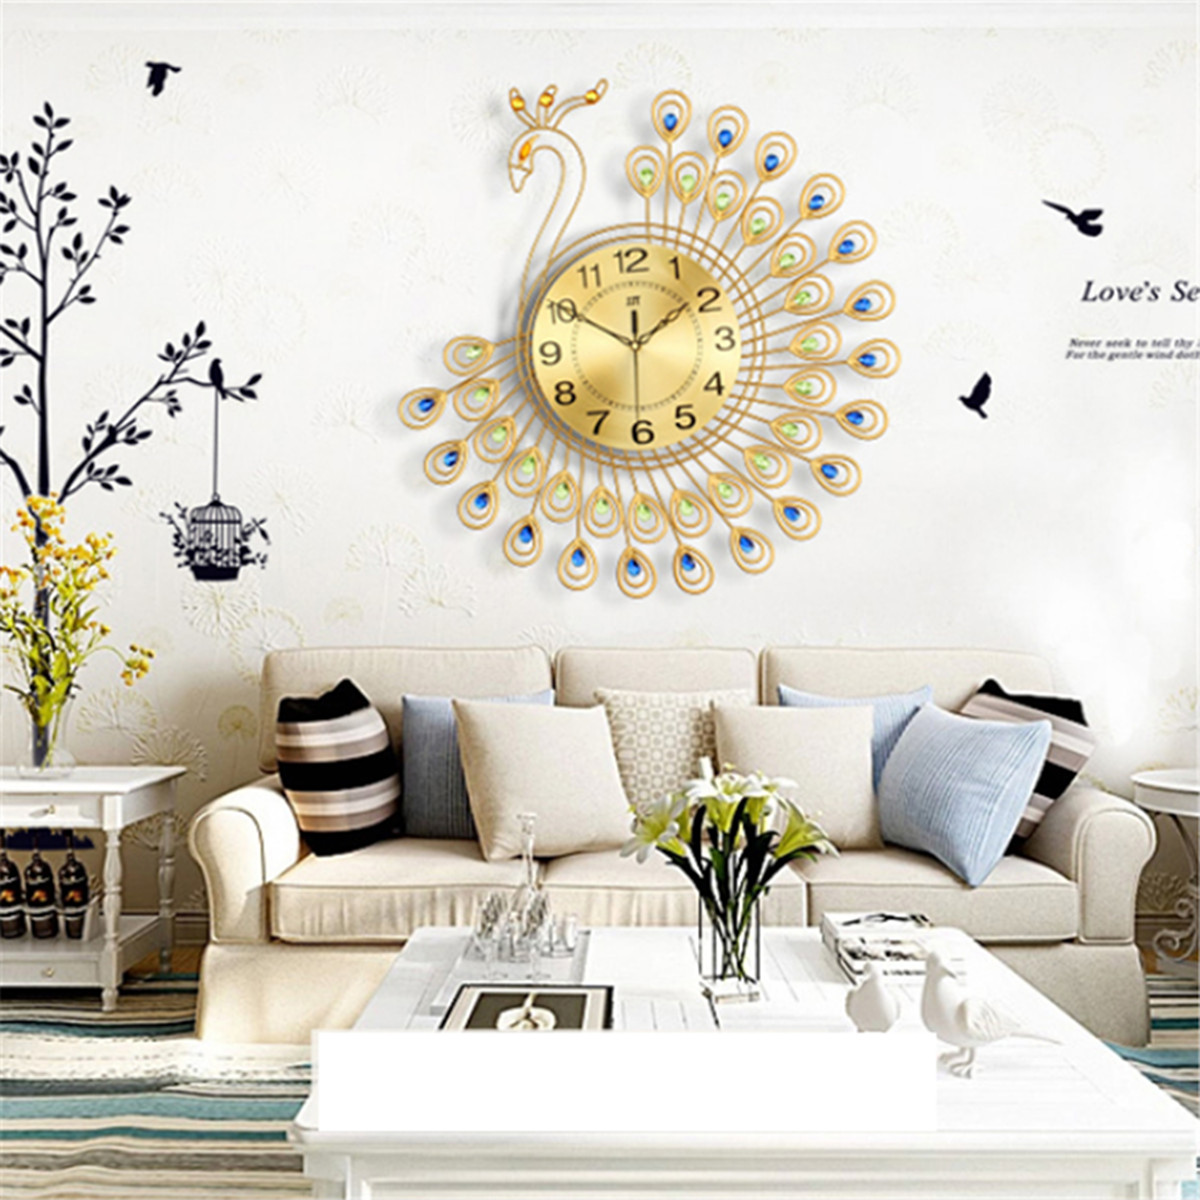 21 Inch Slient 3D Large Diamonds Decorative Gold Jewellery Peacock Luxury  Modern Creative Wall Clock Metal Watch Wall Art Home Decor Crafts For Home  ...